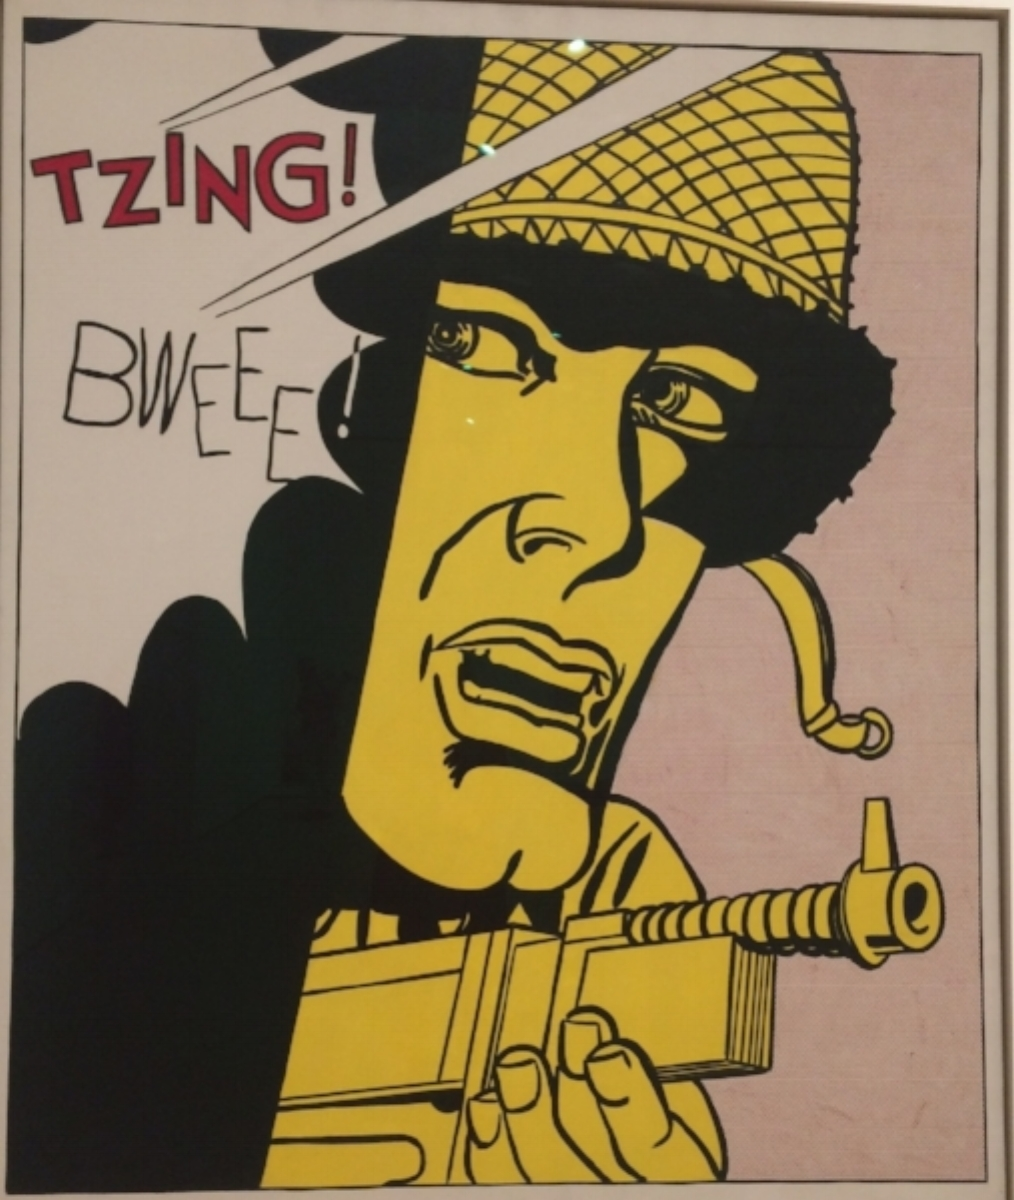 """Roy Lichtenstein, Live Ammo (Tzing), oil on canvas, 69.5"""" x 57.5"""", 1962. Courtesey of SF MOMA."""